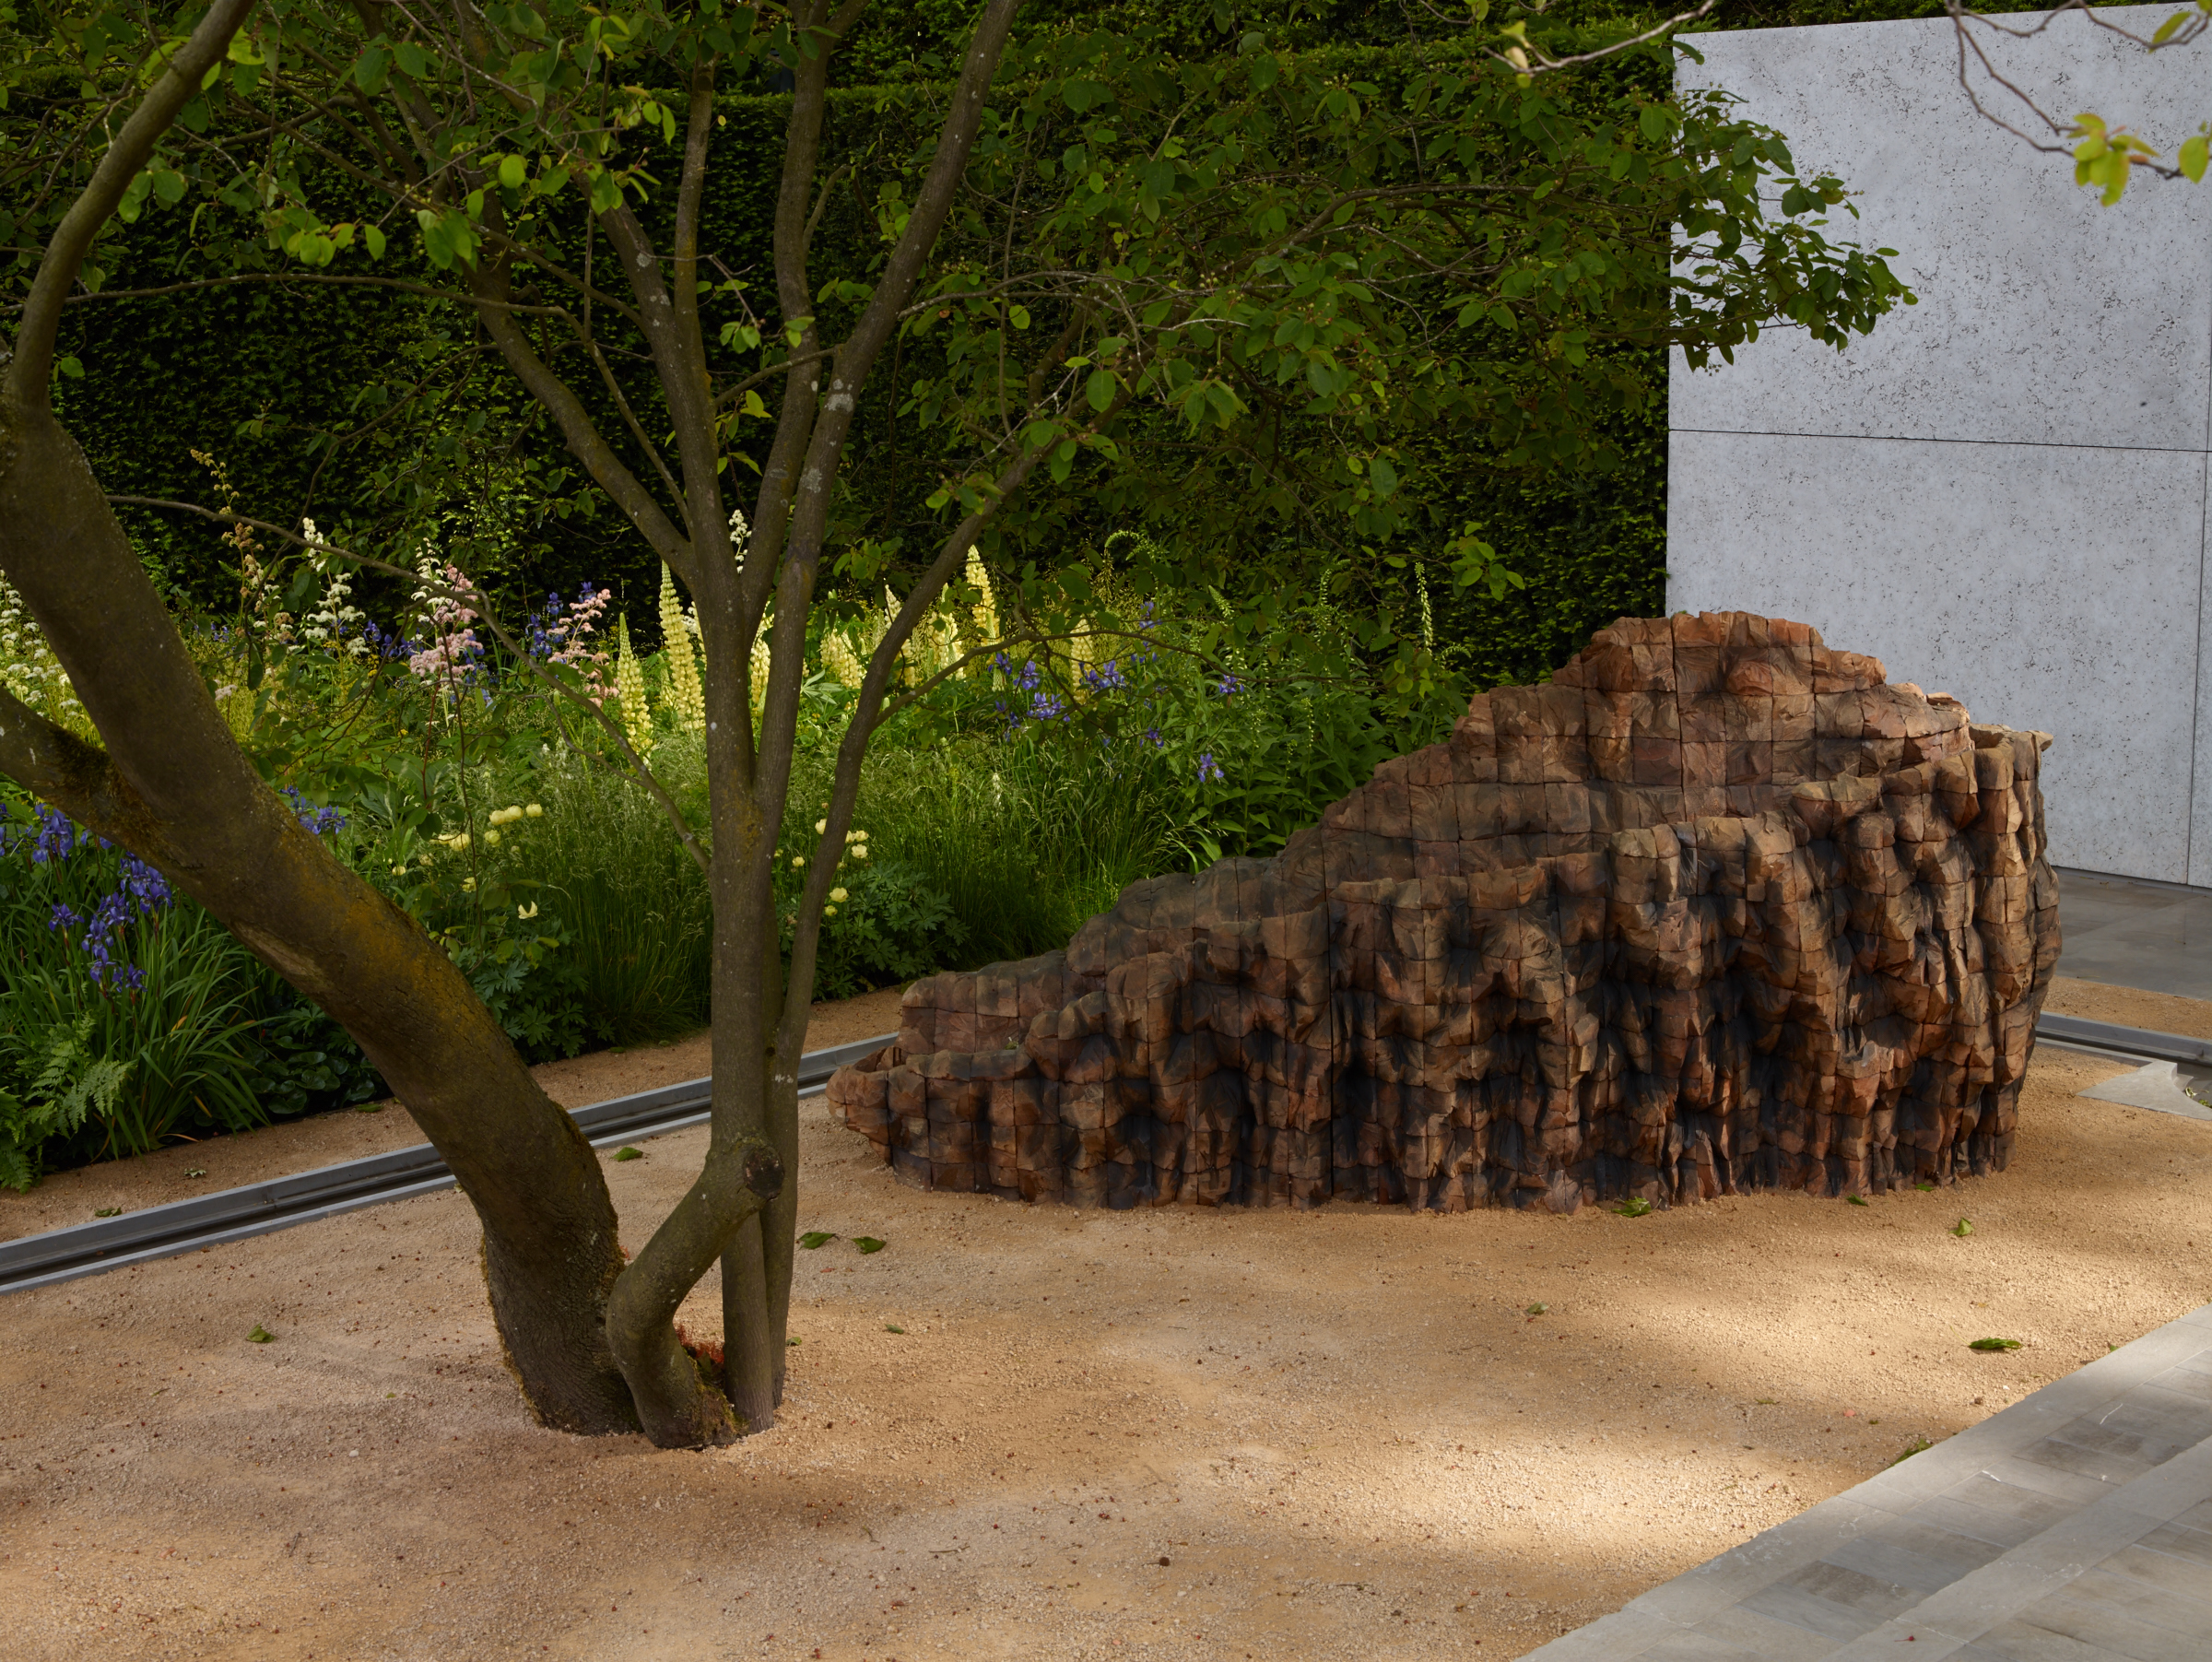 Luciano Giubbilei Laurent Perrier Garden 2014. Sculpture by Ursula von Rydingsvard. Photo courtesy of studio Allan Pollok-Morris.